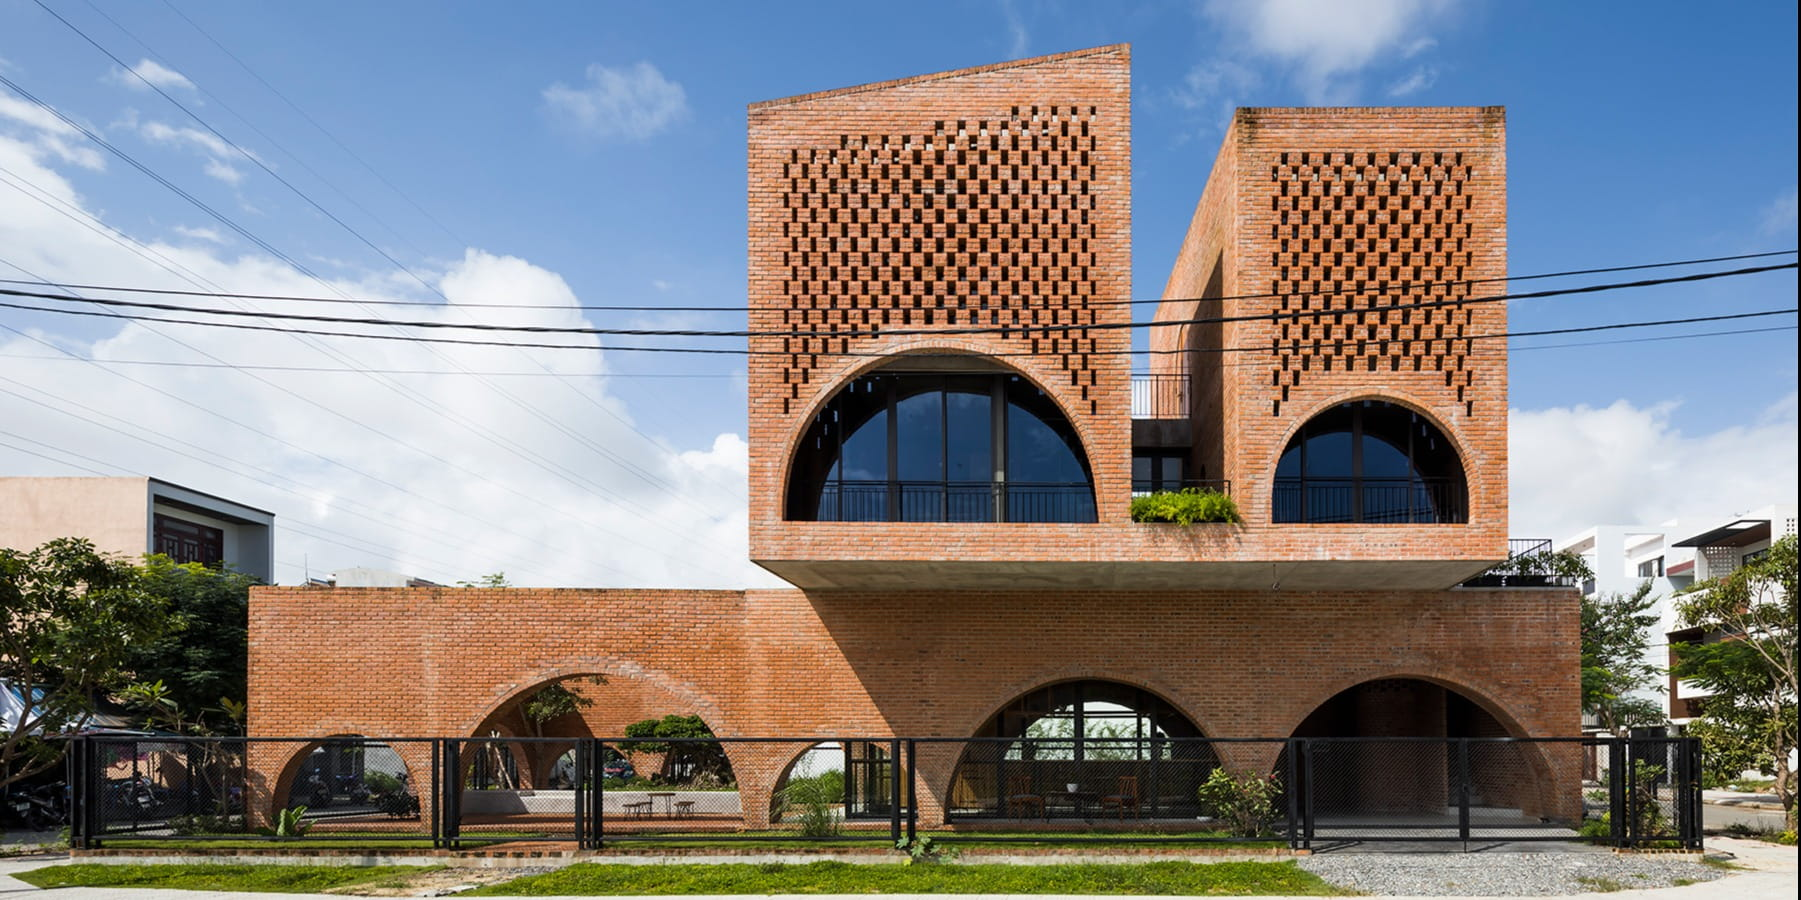 Tropical Space designed Cuckoo House duals as a coffee shop and a family home, wrapped in tapestry of bricks